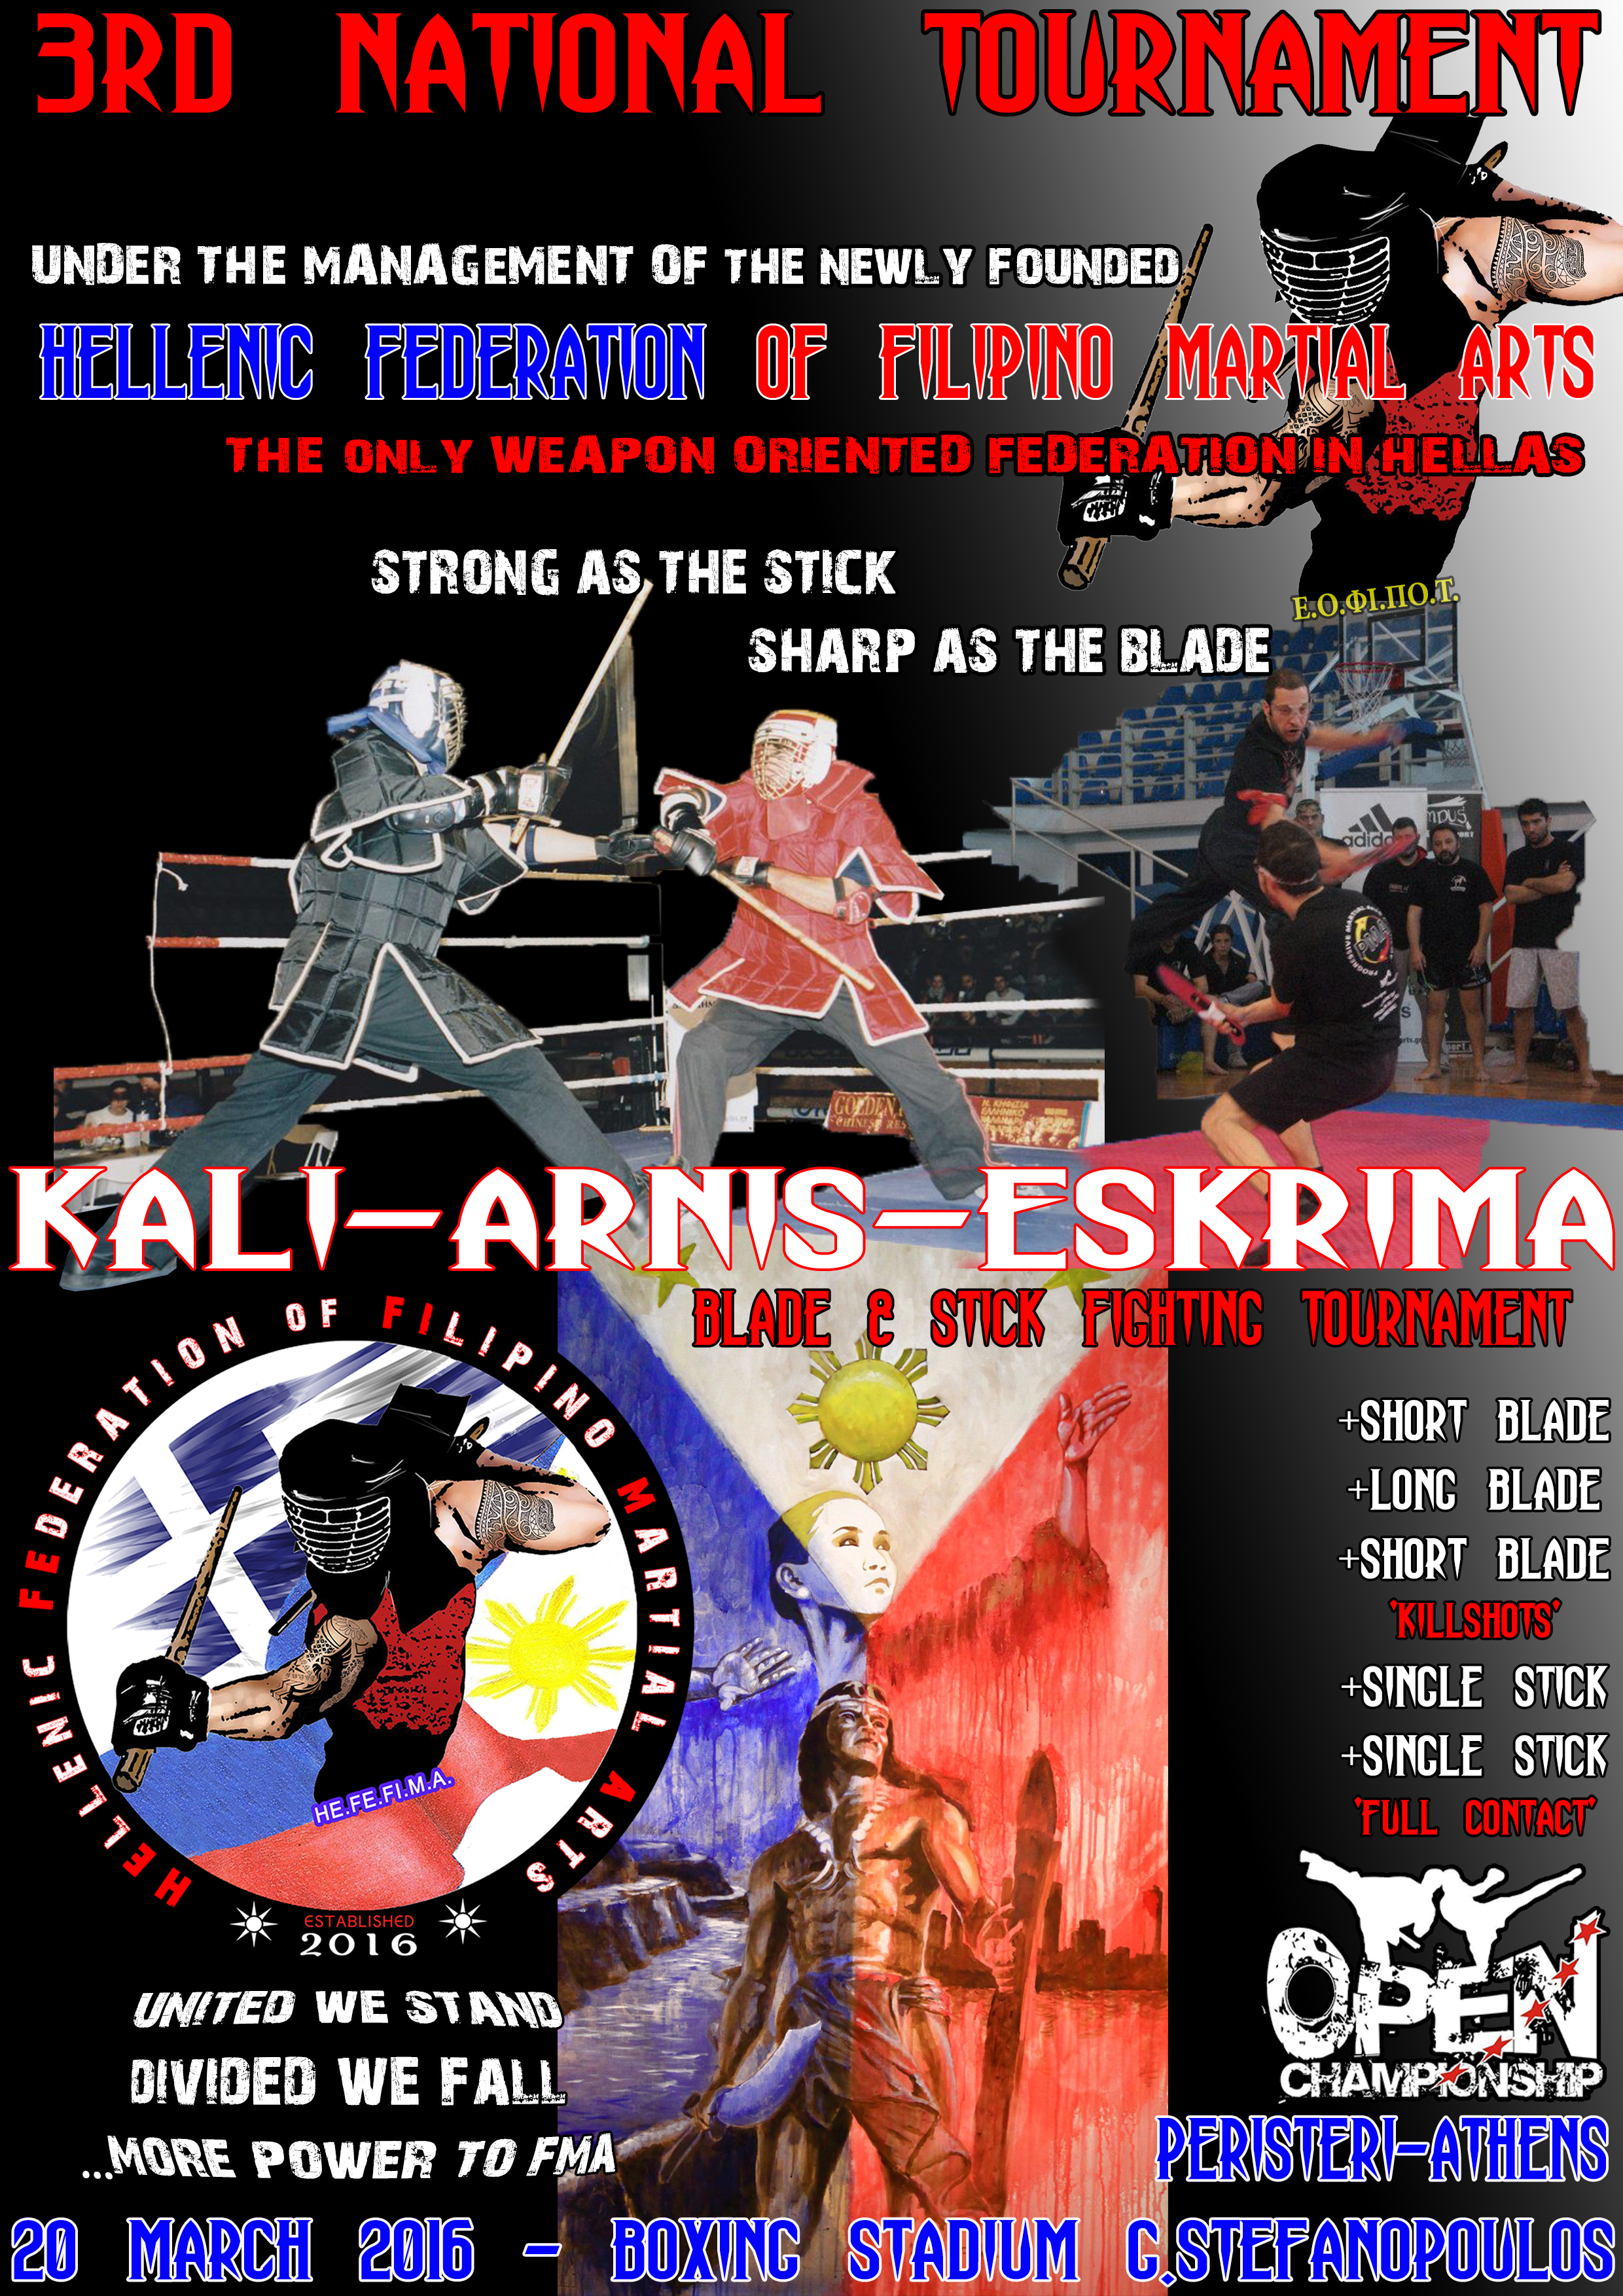 3rd KALI-ARNIS-ESKRIMA NATIONAL TOURNAMENT